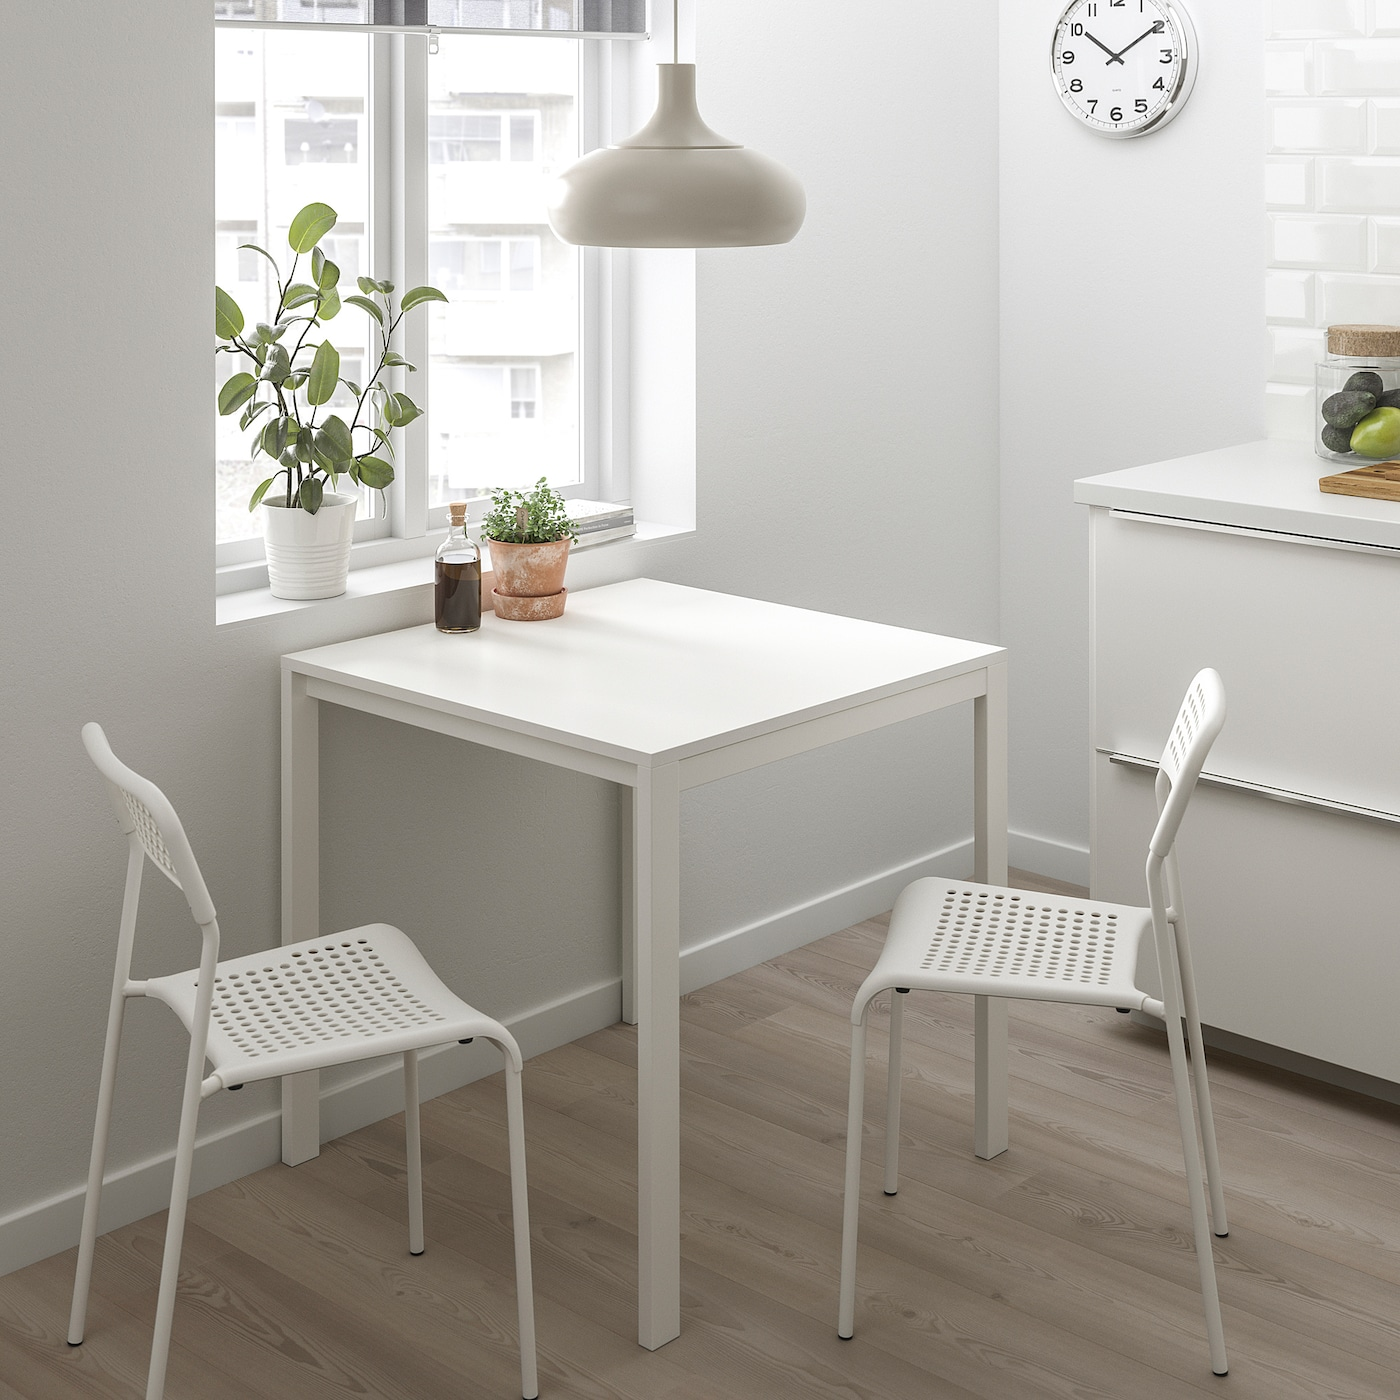 Picture of: Furniture Ikea Melltorp Dining Table White Steel Legs Moisture Stain Resistant 75×75 Cm Home Furniture Diy Ot Baieducotentin Fr